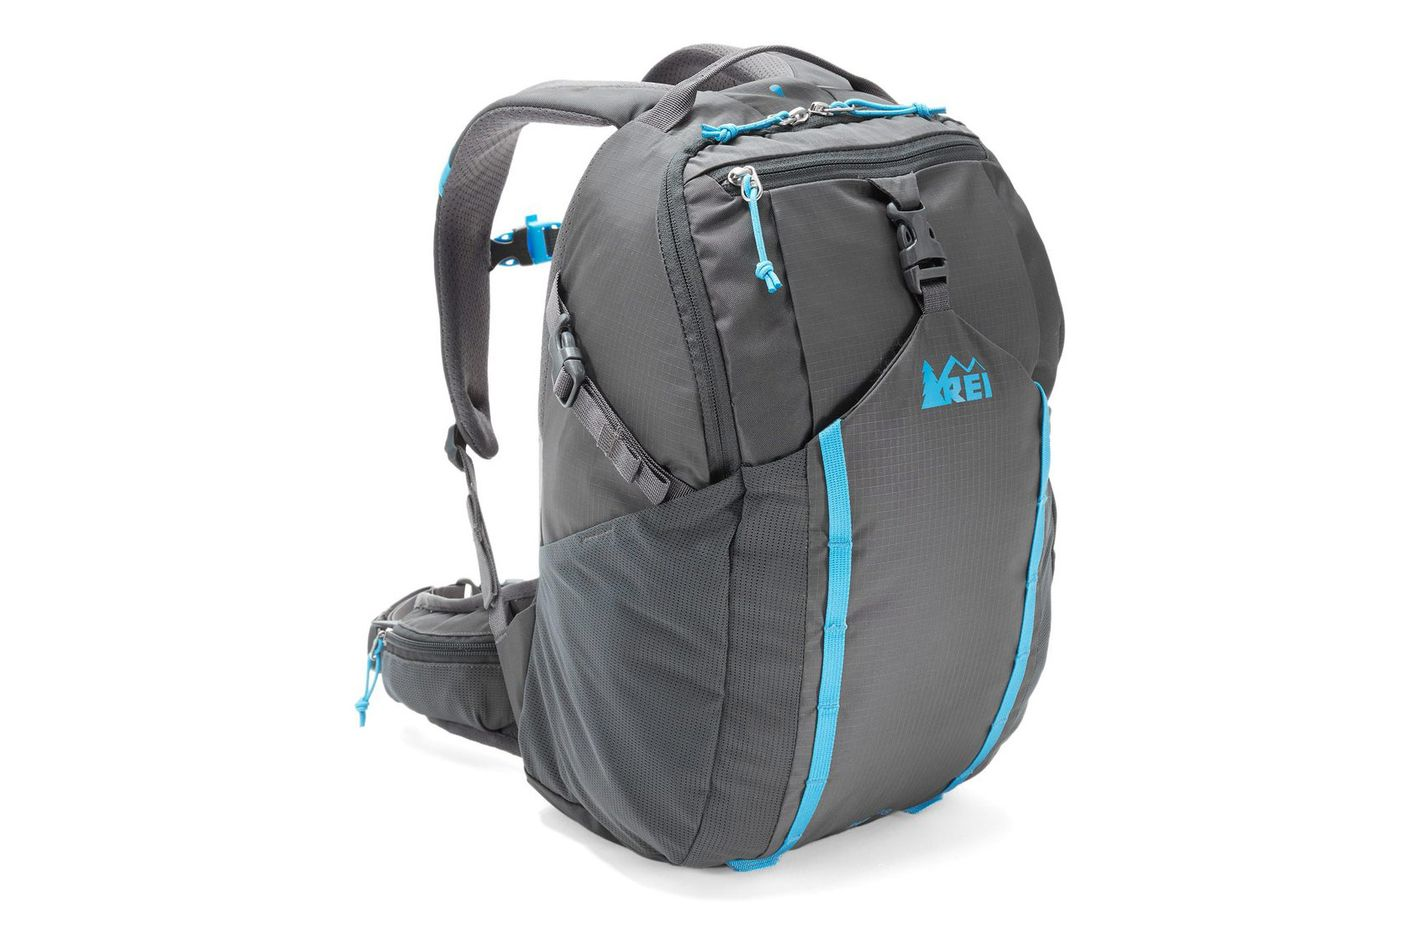 REI Co-op Tarn 18 Pack